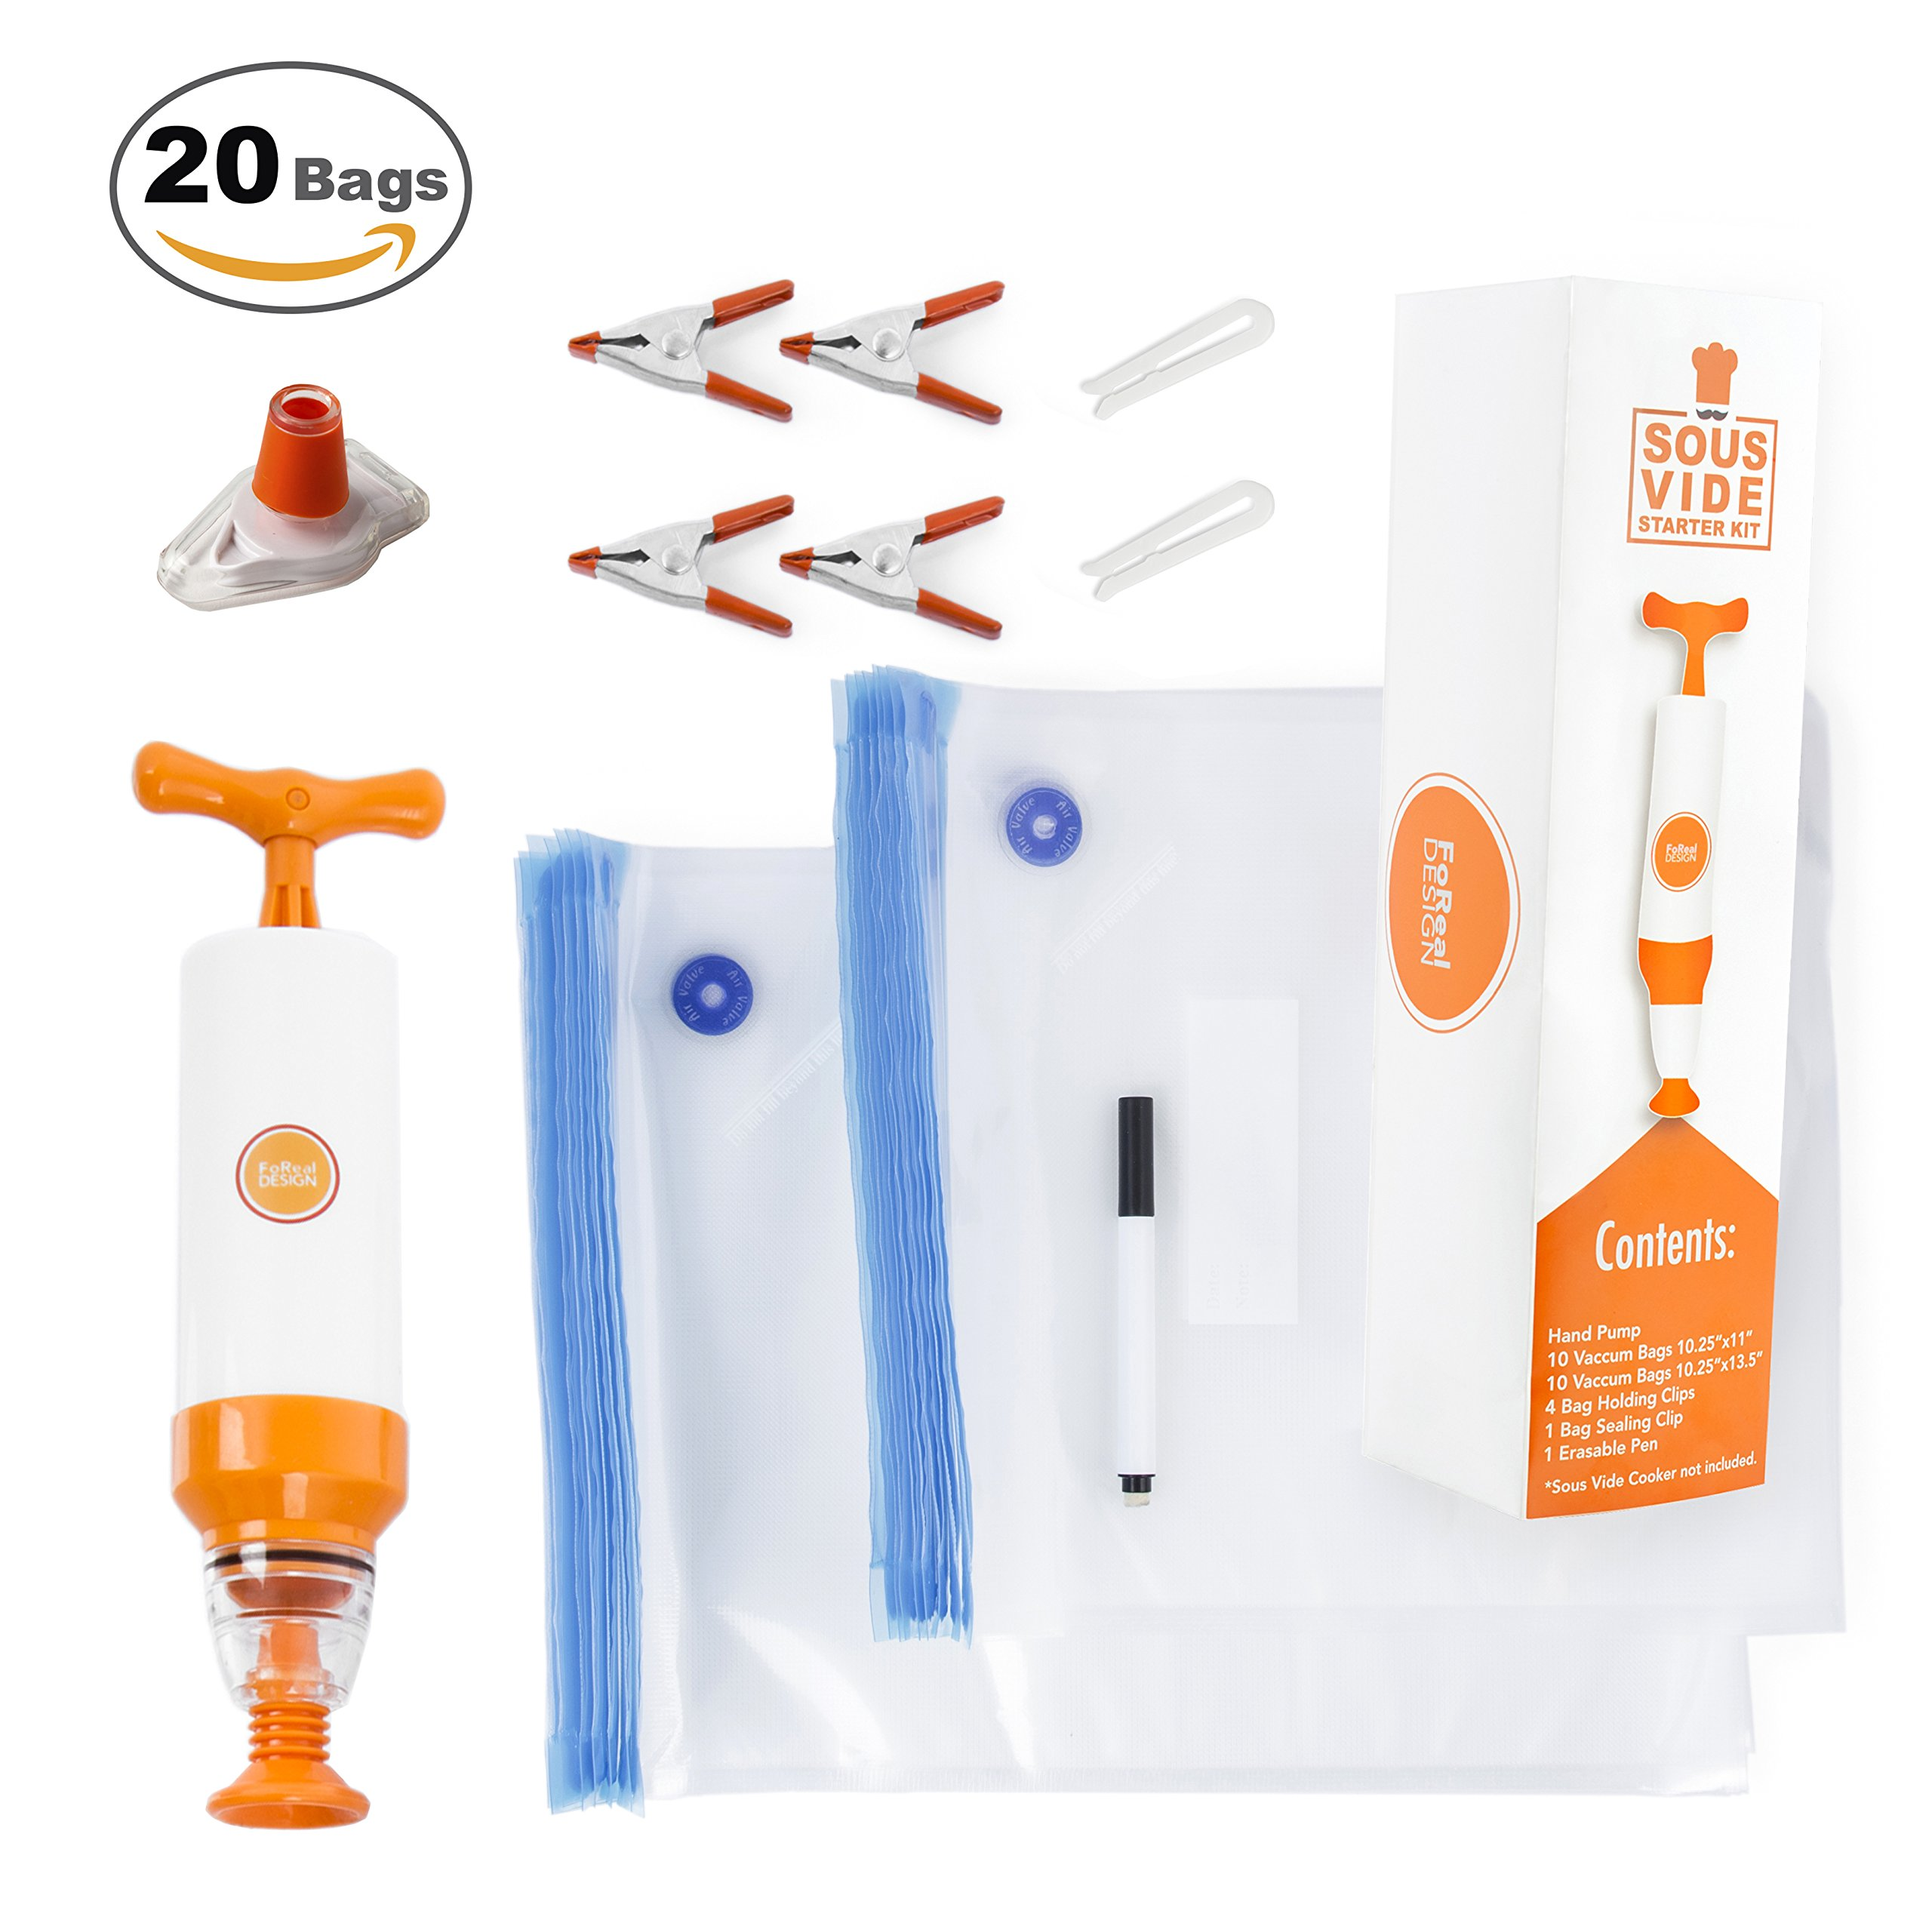 FoReal Design Sous Vide Bags Kit for Anova and Joule - 20 Reusable BPA Free Sous Vide Bags, 1 Hand Pump, 2 Bag Sealing Clips, 4 Sous Vide Clips,1 Erasable Marker,1 Wine Bottle Sealer, & E-Cookbook